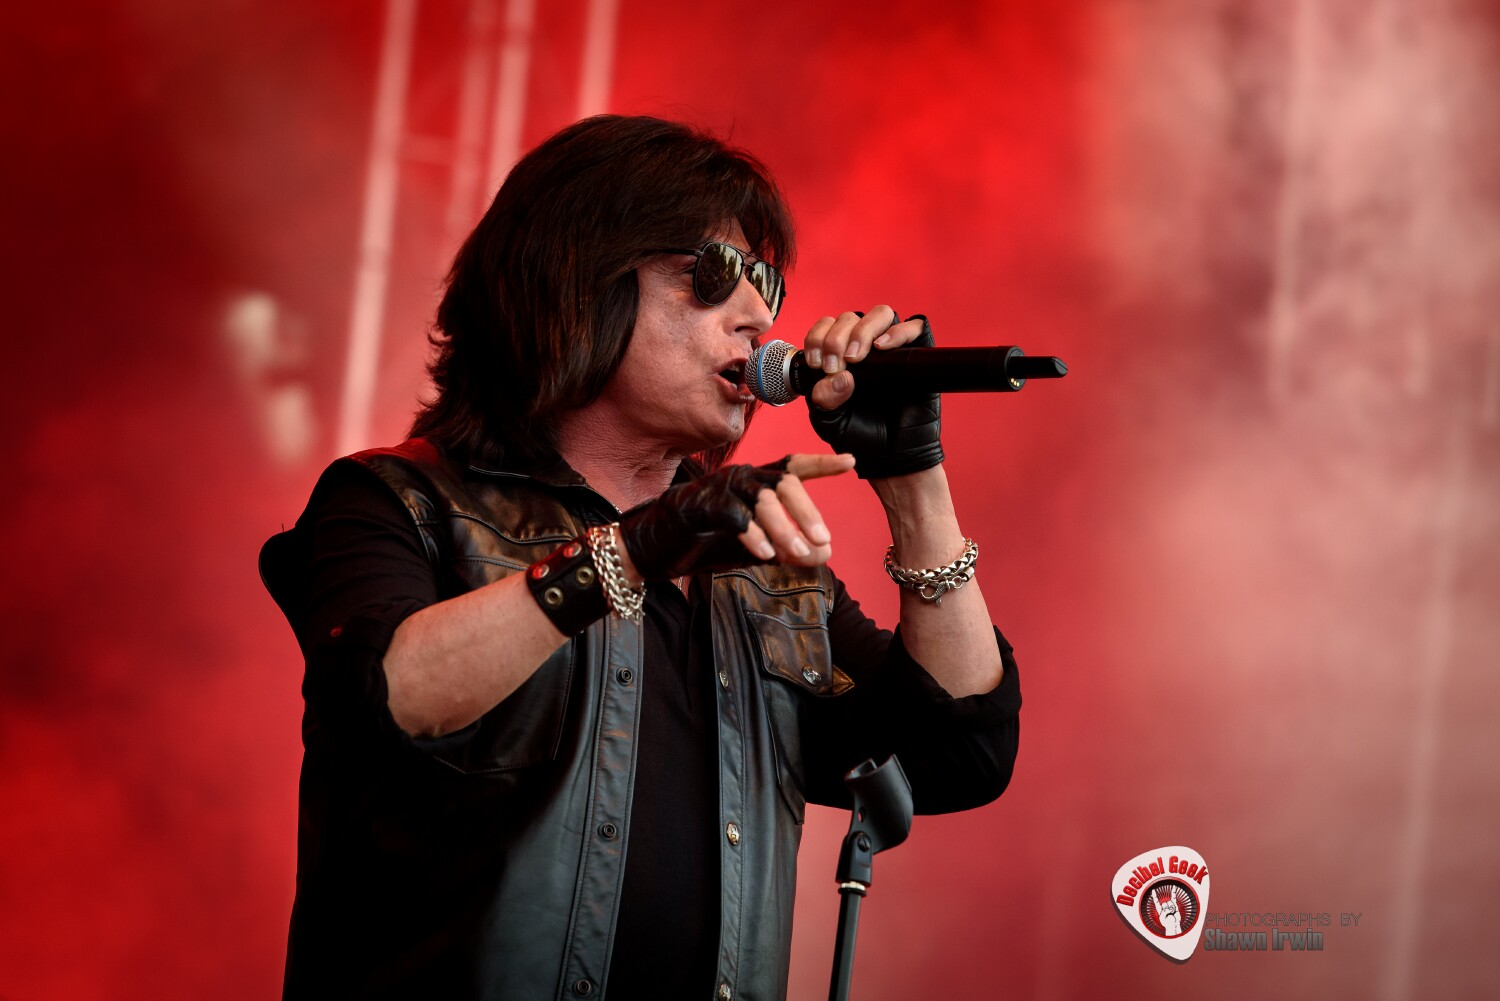 Joe Lynn Turner #34-Sweden Rock 2019-Shawn Irwin